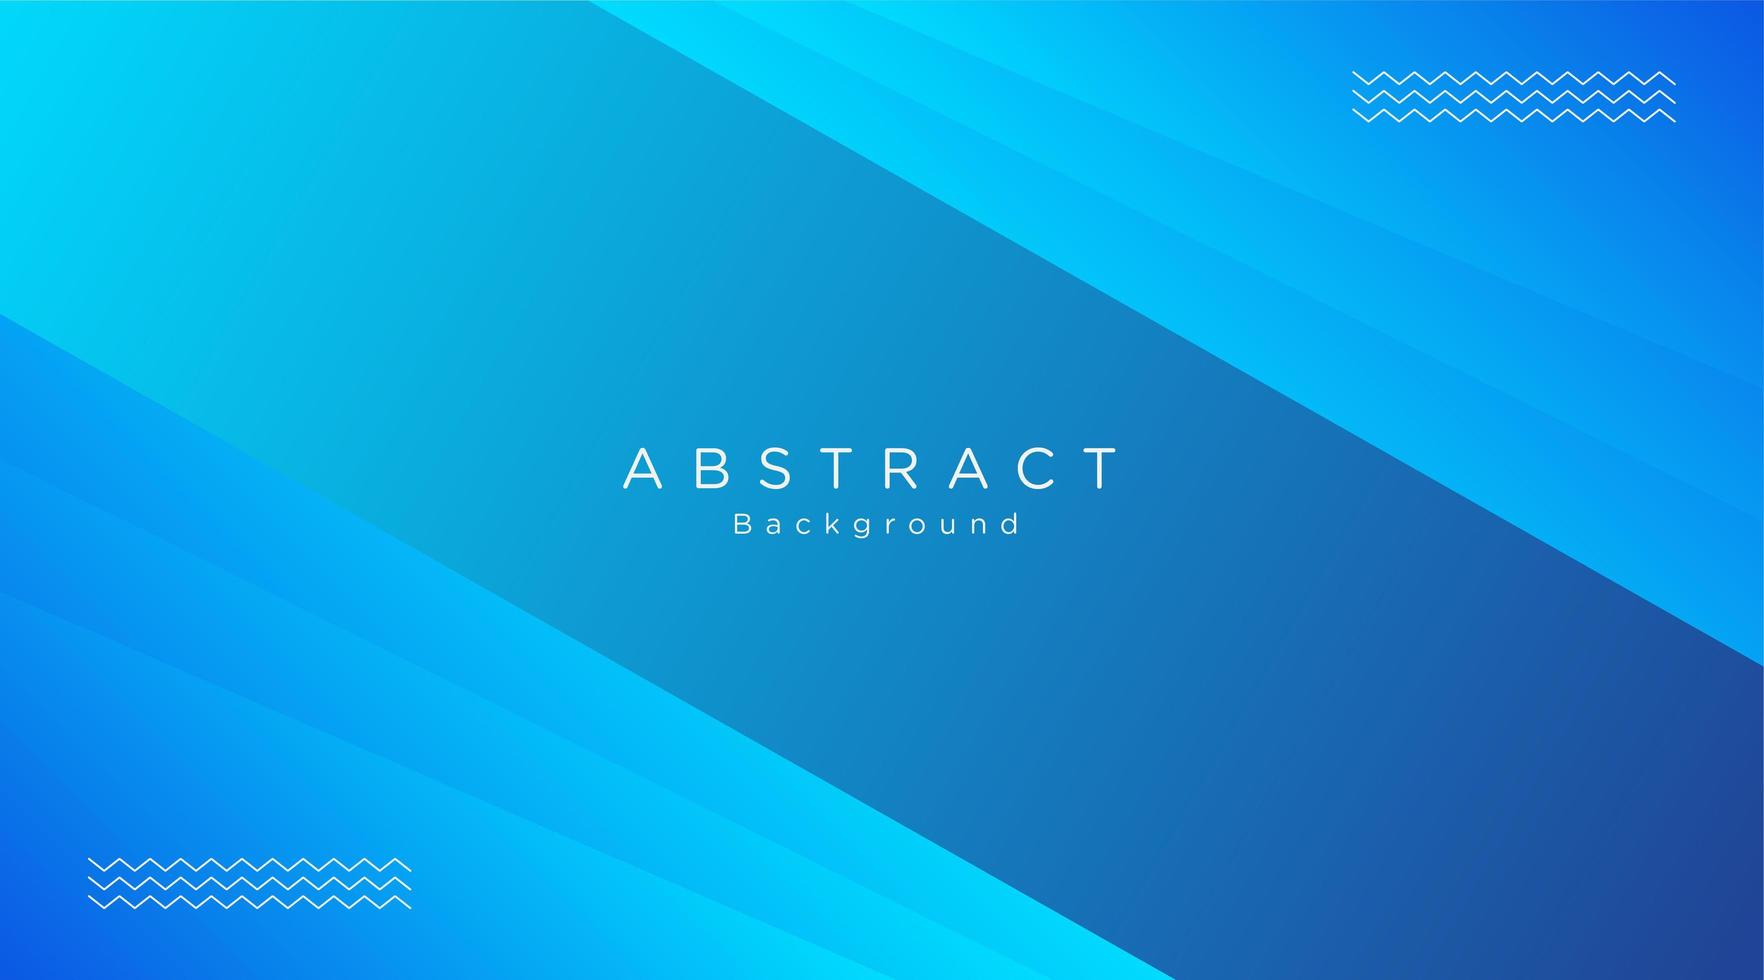 Blue Layered Angled Shape Background vector